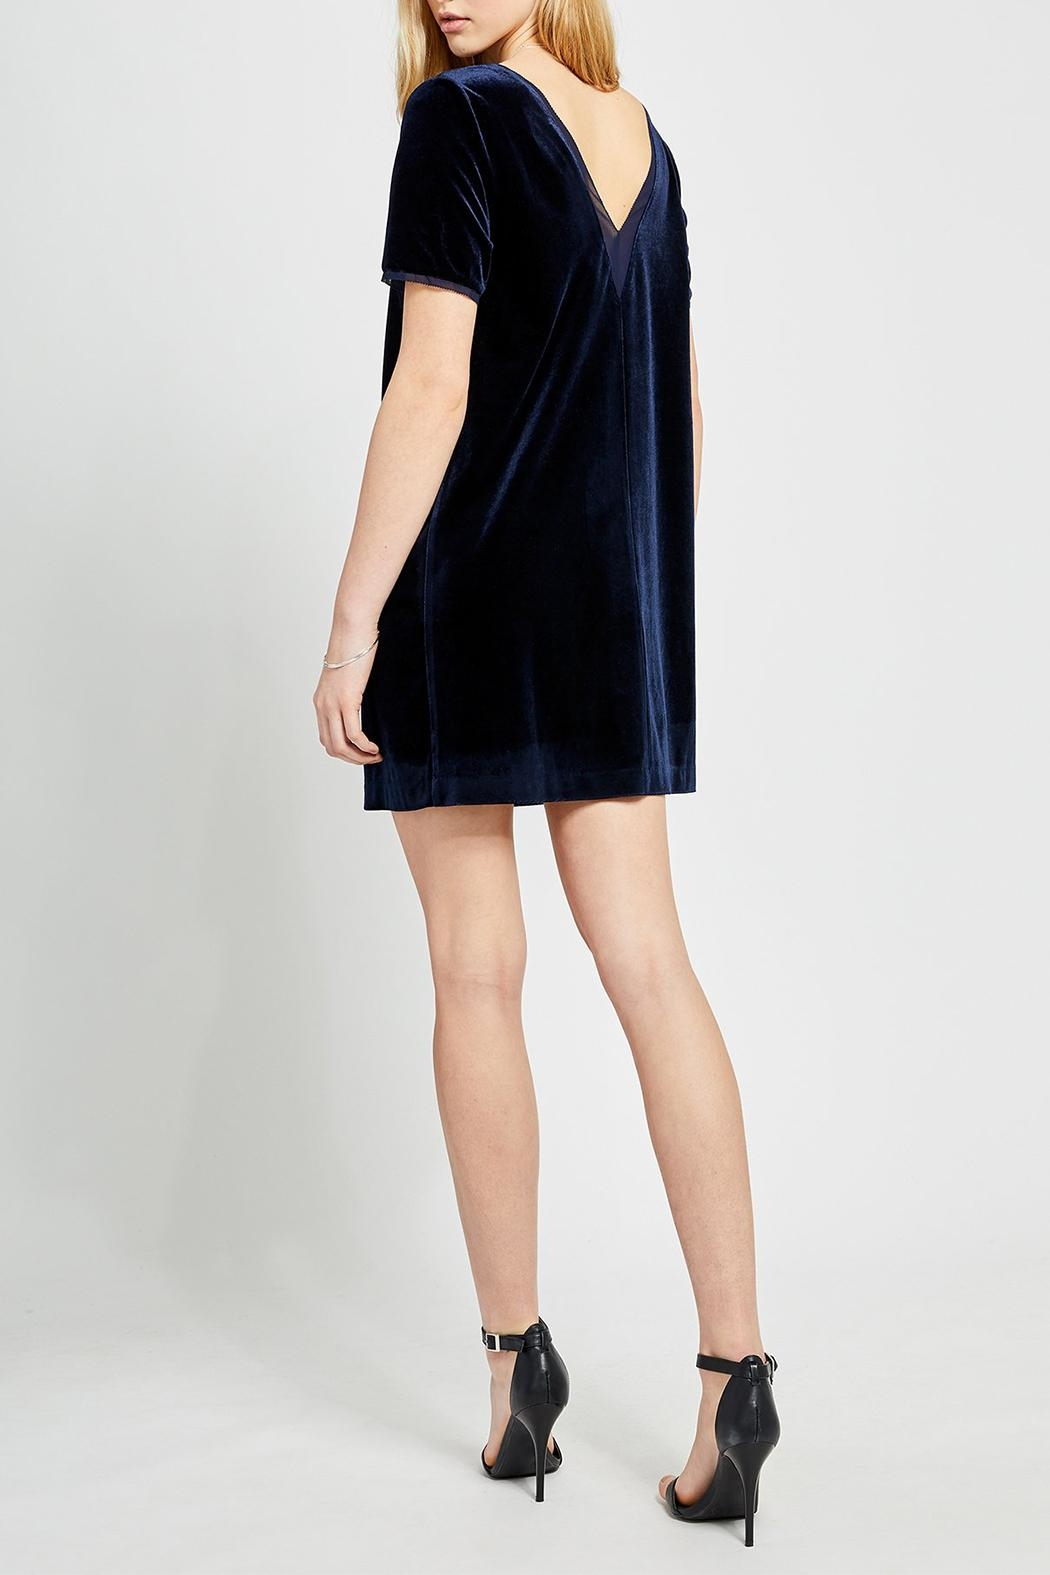 Gentle Fawn Claire Dress - Side Cropped Image